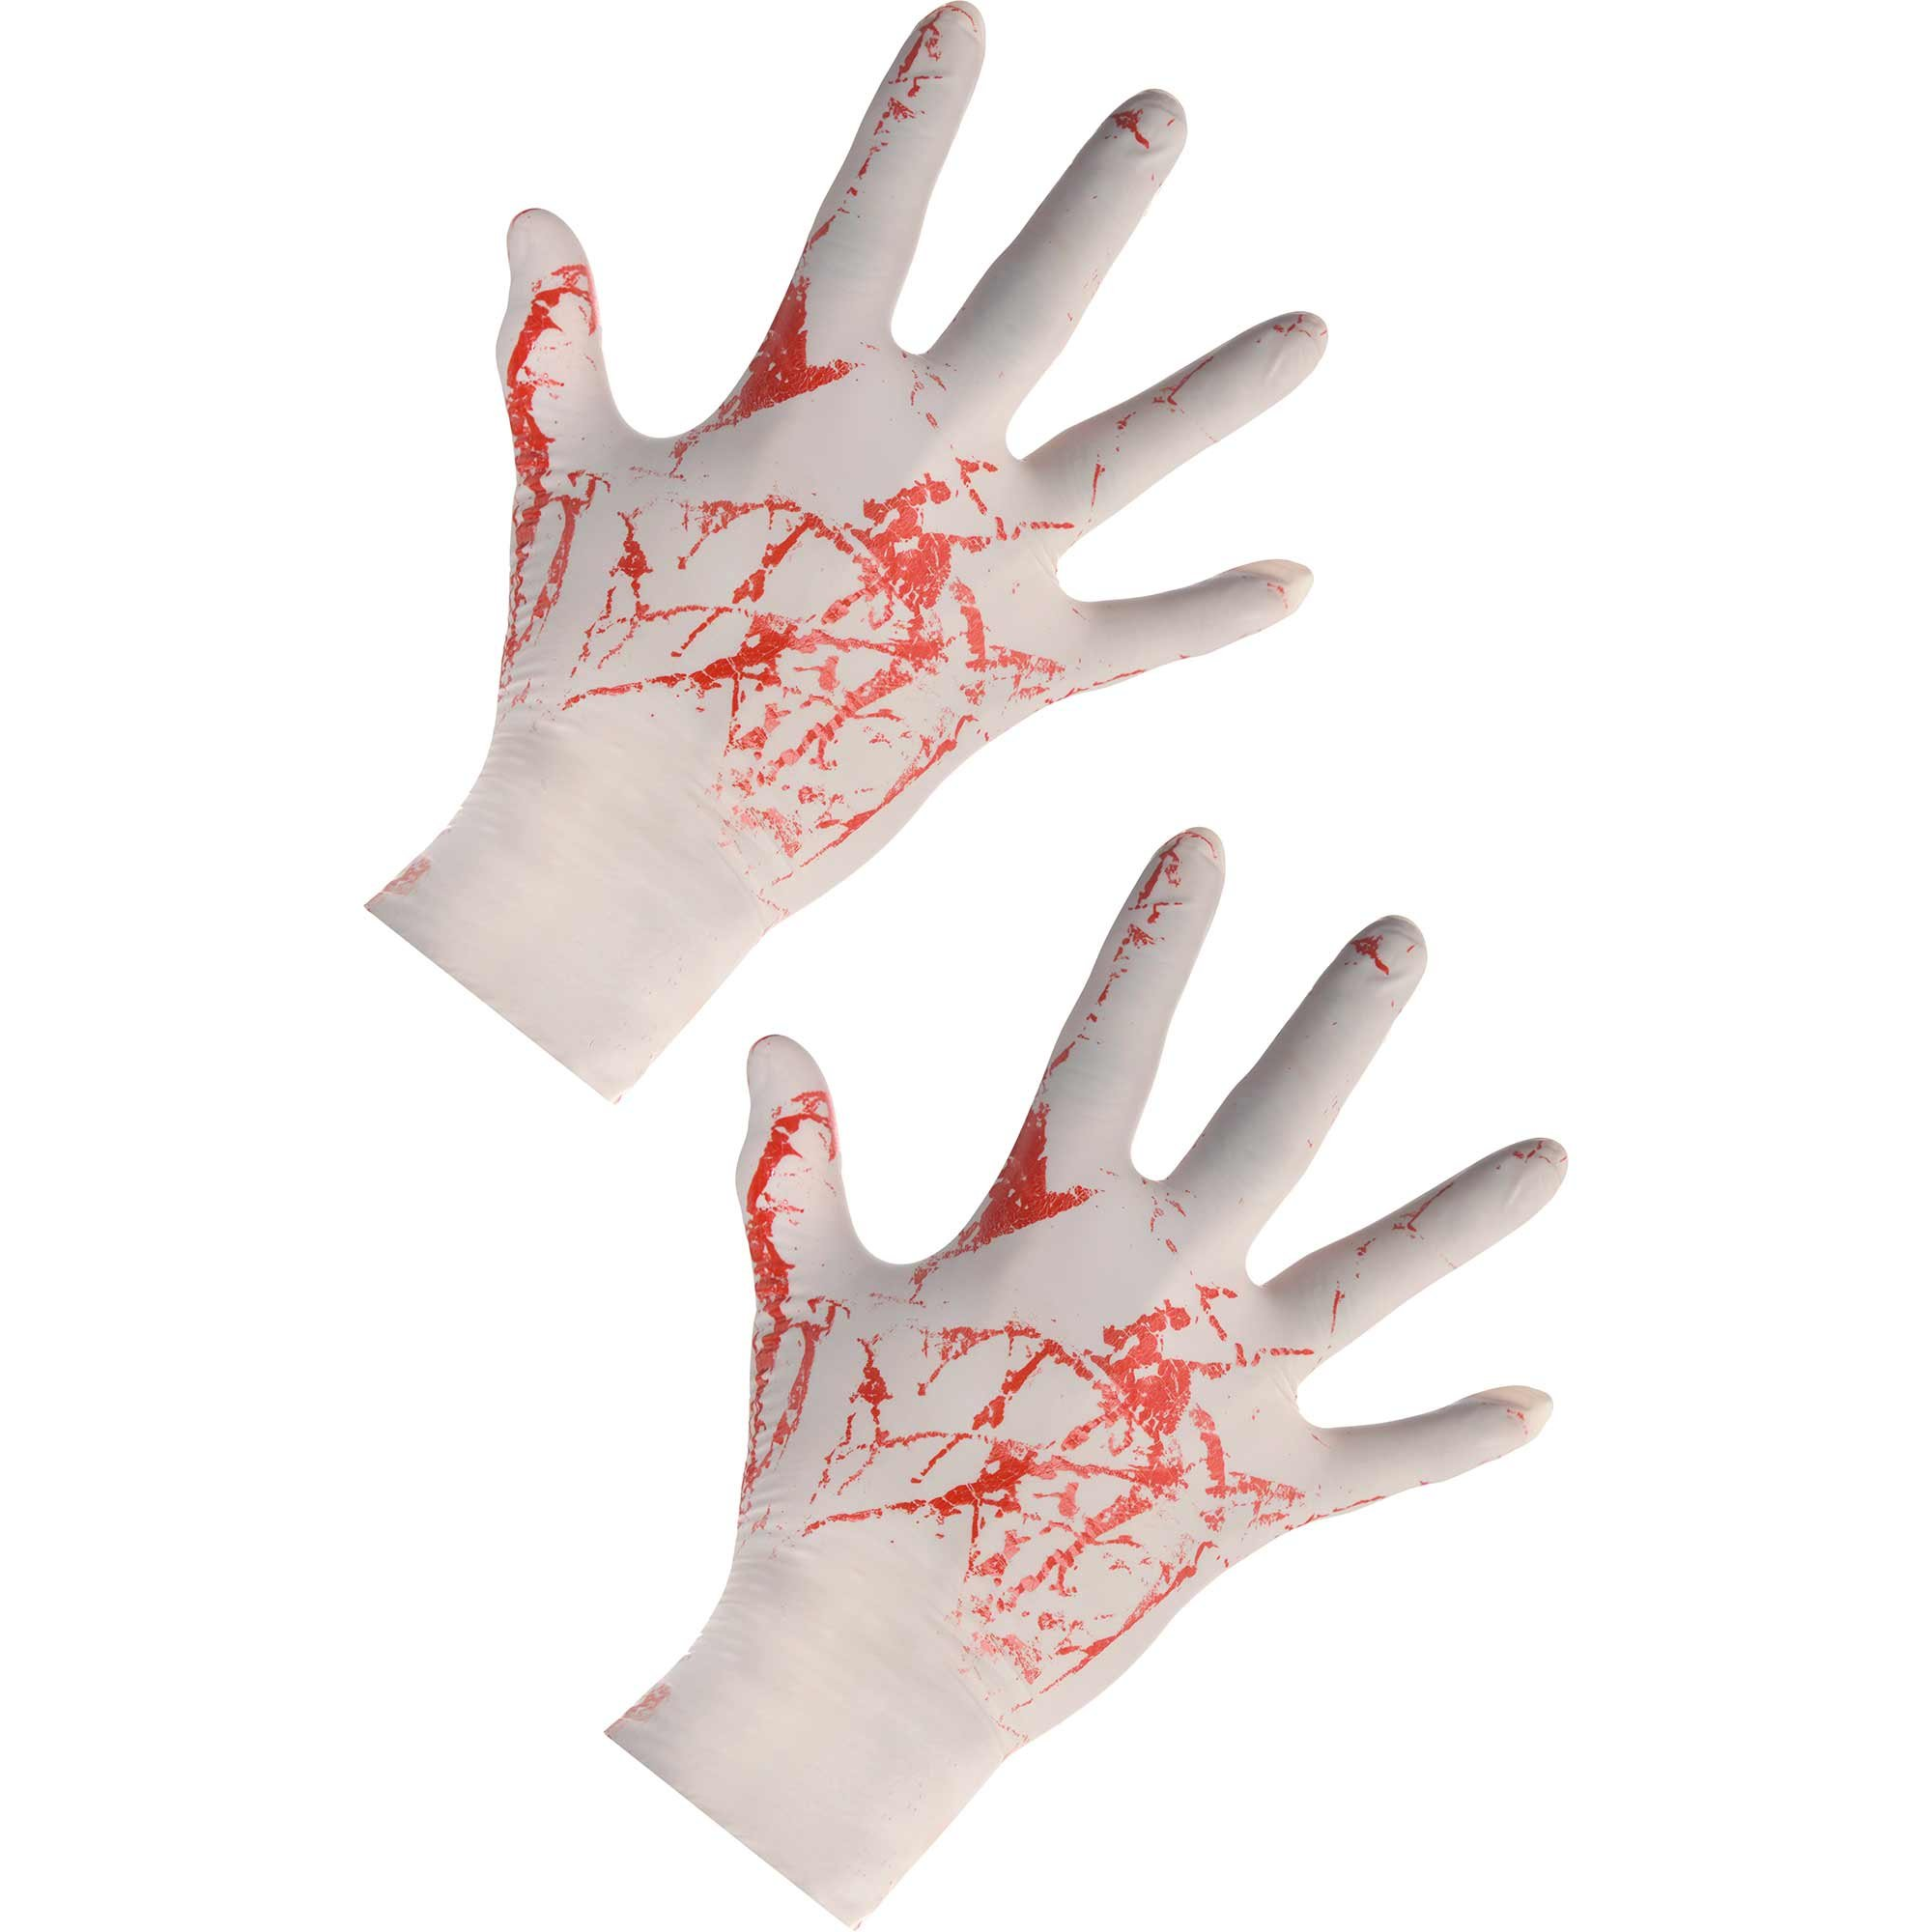 Bloody Rubber Gloves